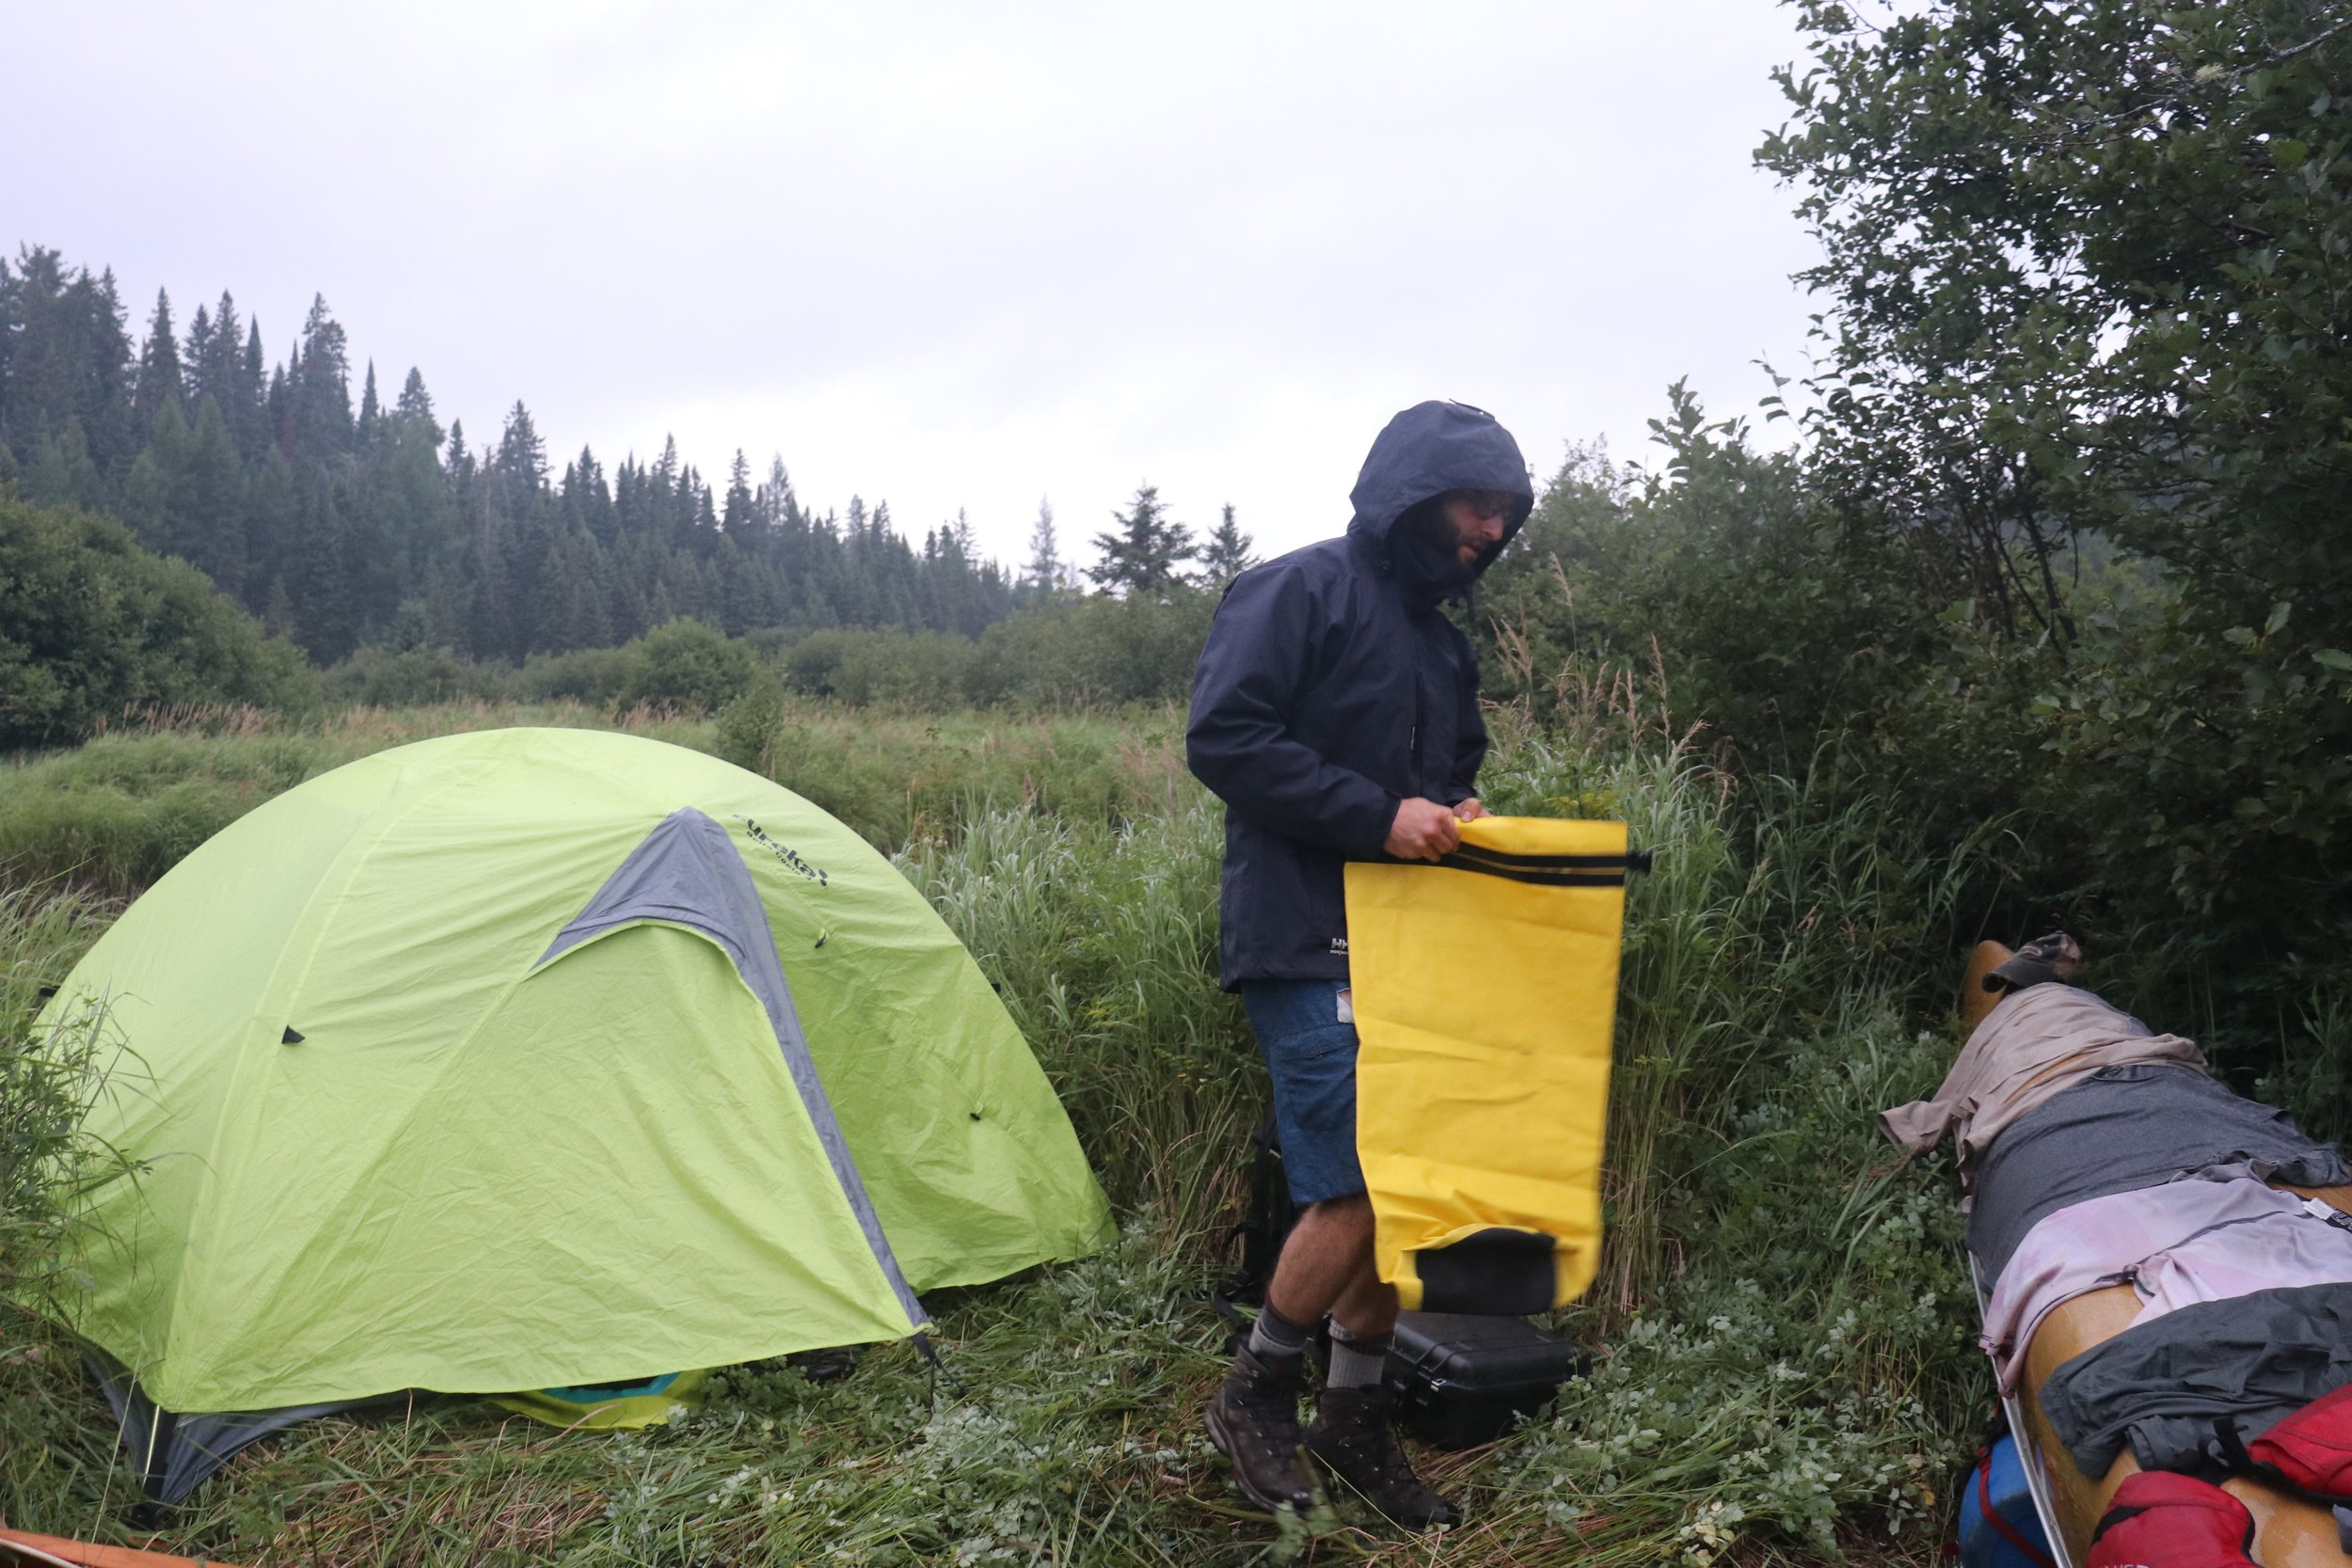 We were soaked from the alders, the temp had dropped, there was no more daylight, and we had no idea where we were. Forced to camp on a grass patch along the river.